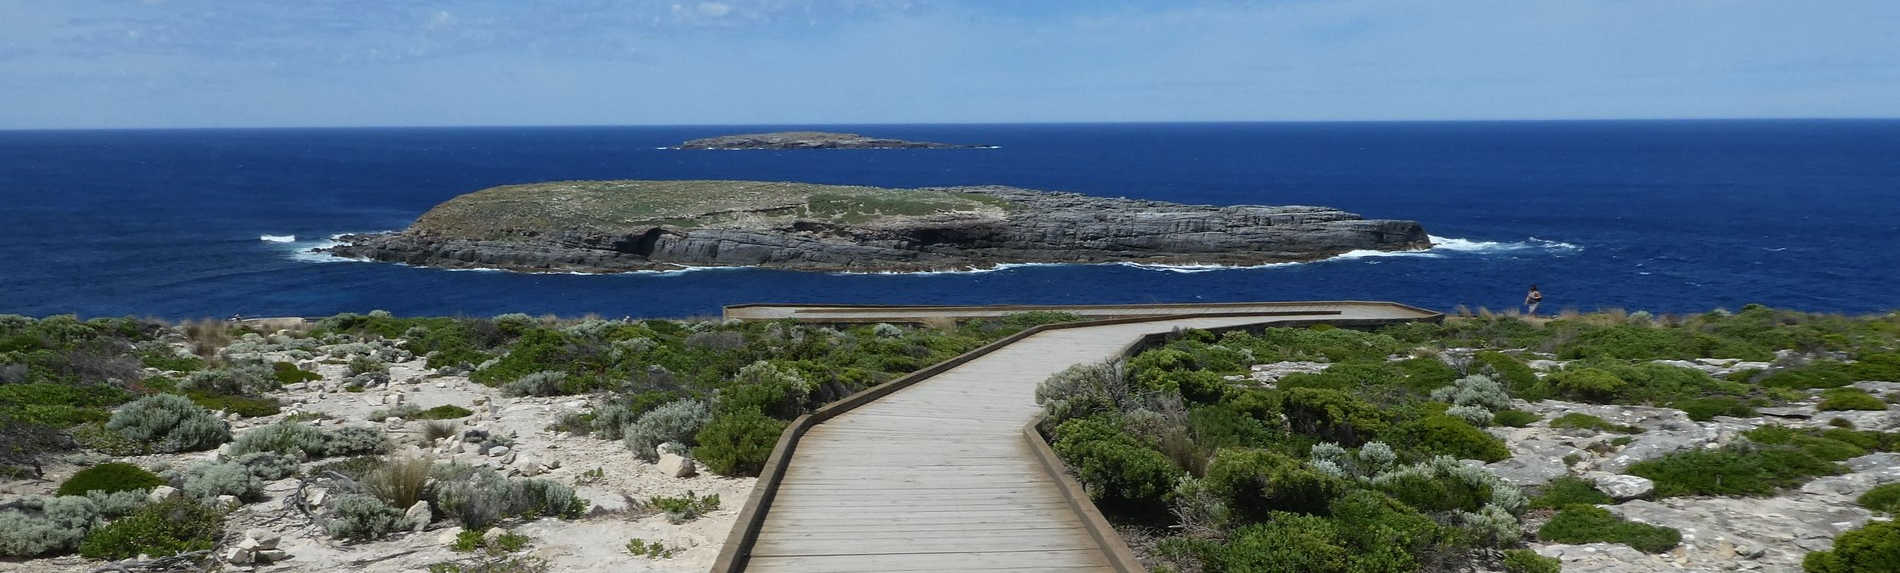 How long is the ferry from Cape Jervis to Kangaroo Island?